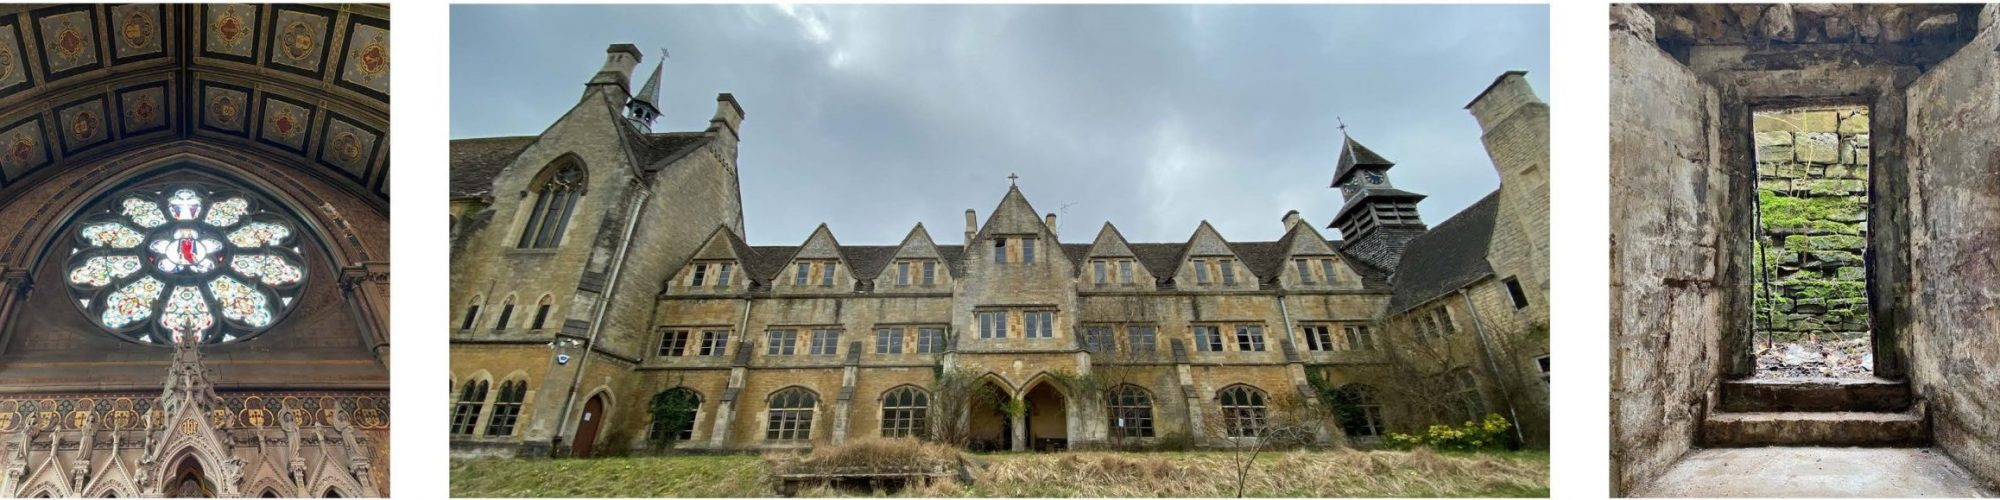 Woodchester Convent collage cropped